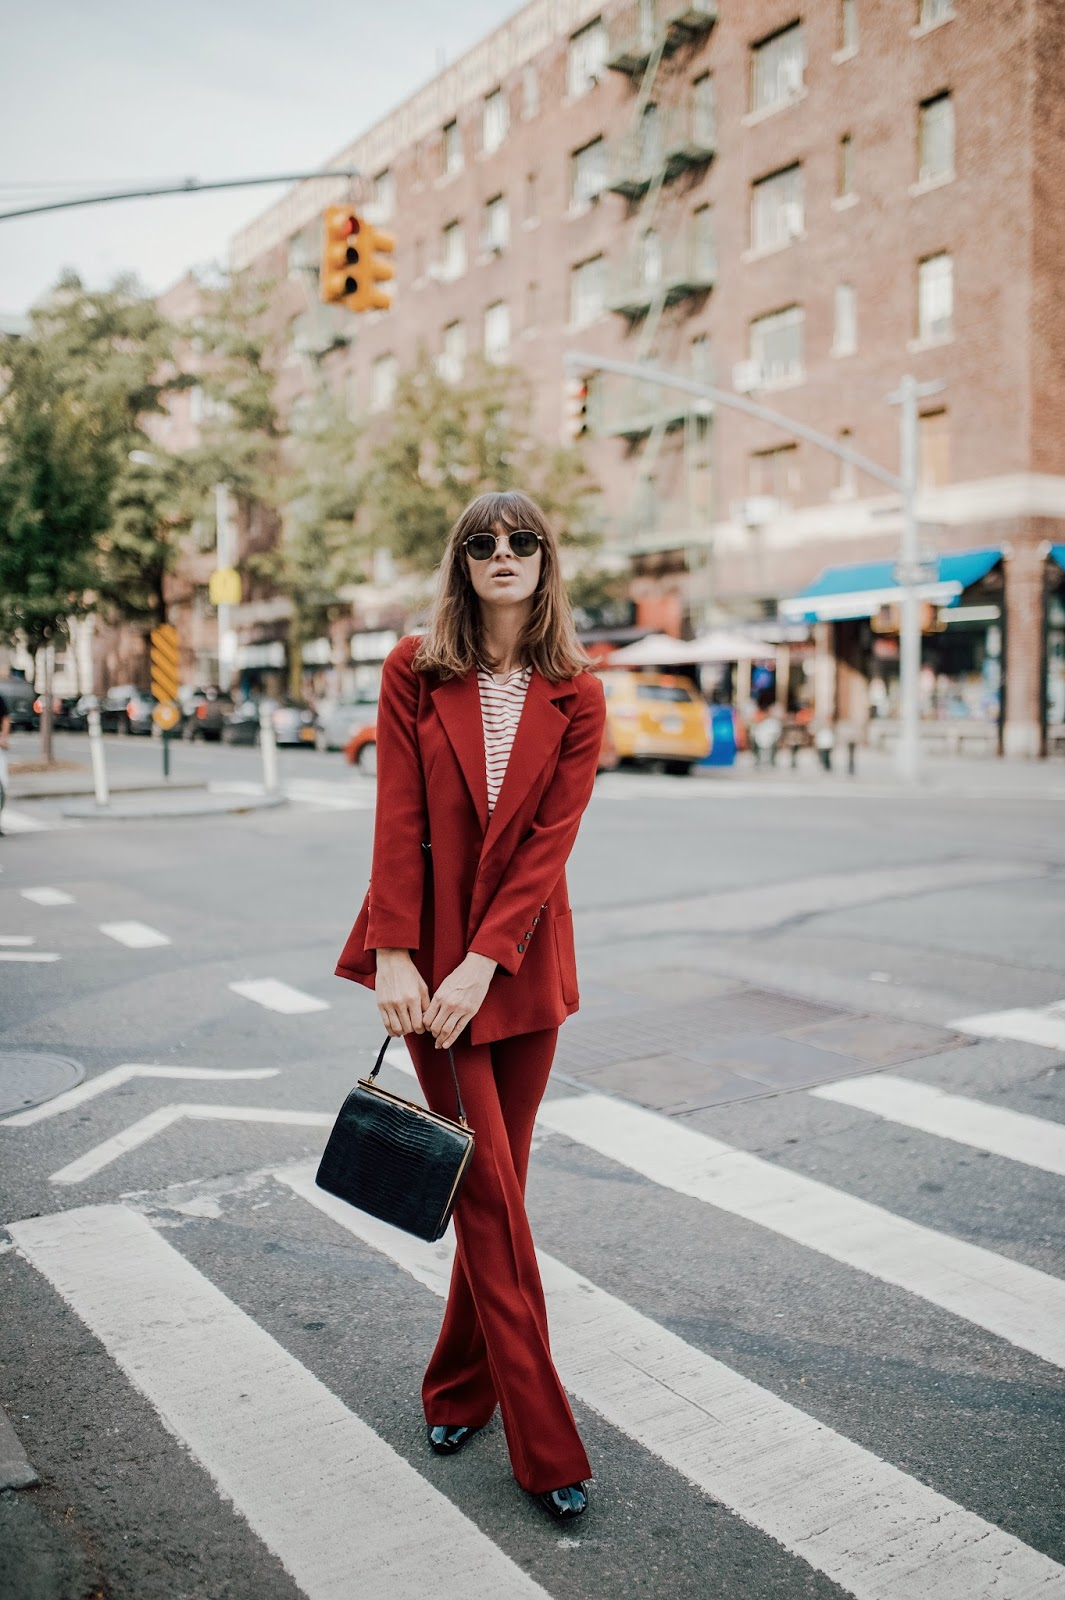 Getting Out of a Rut + the Power of a Pant Suit